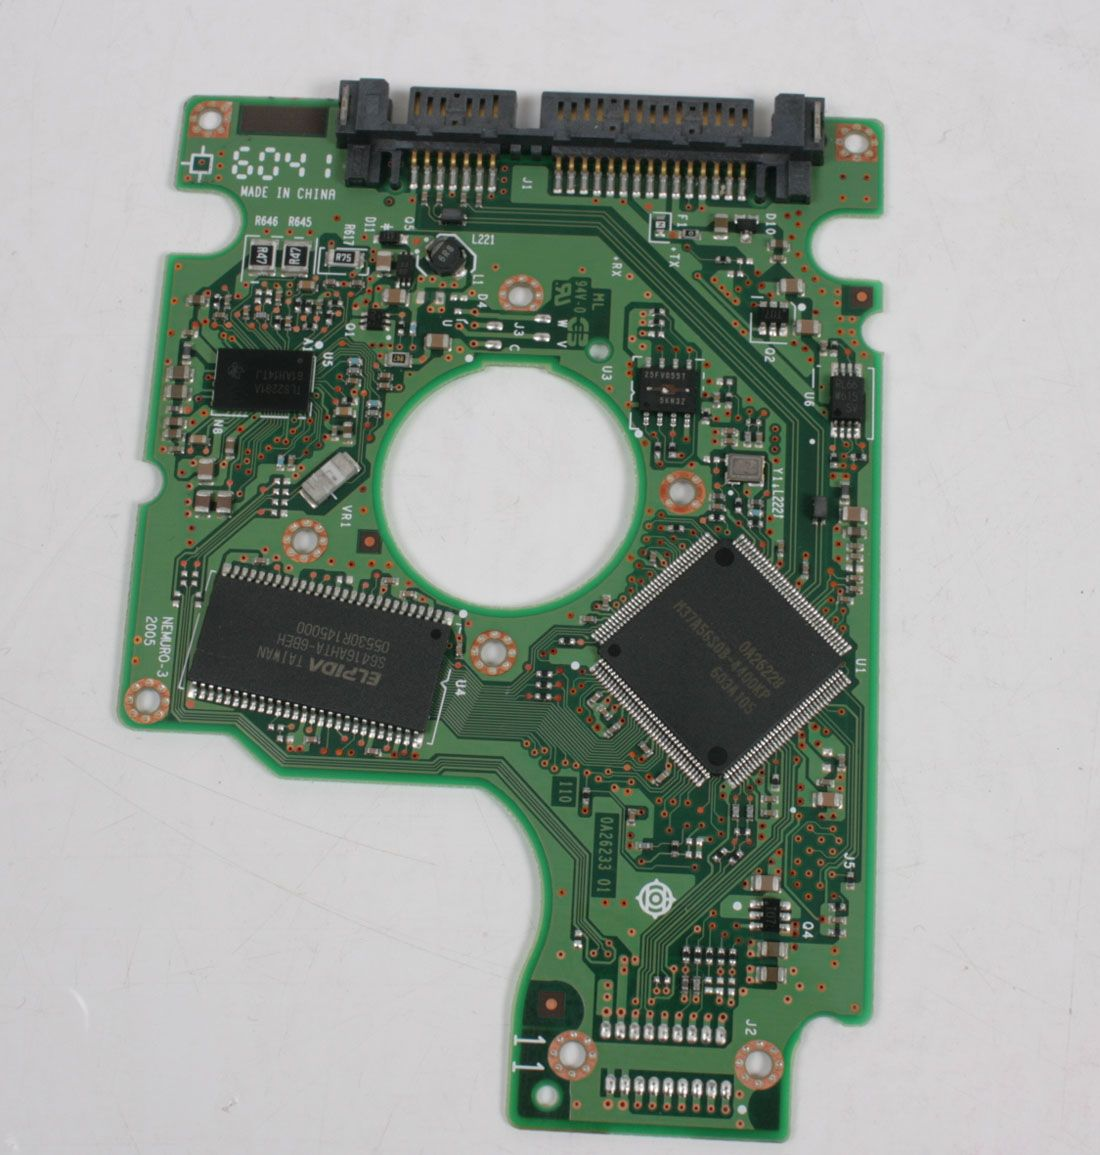 HITACHI HTS721010G9SA00 100GB SATA 2,5 HARD DRIVE / PCB (CIRCUIT BOARD) ONLY FOR DATA